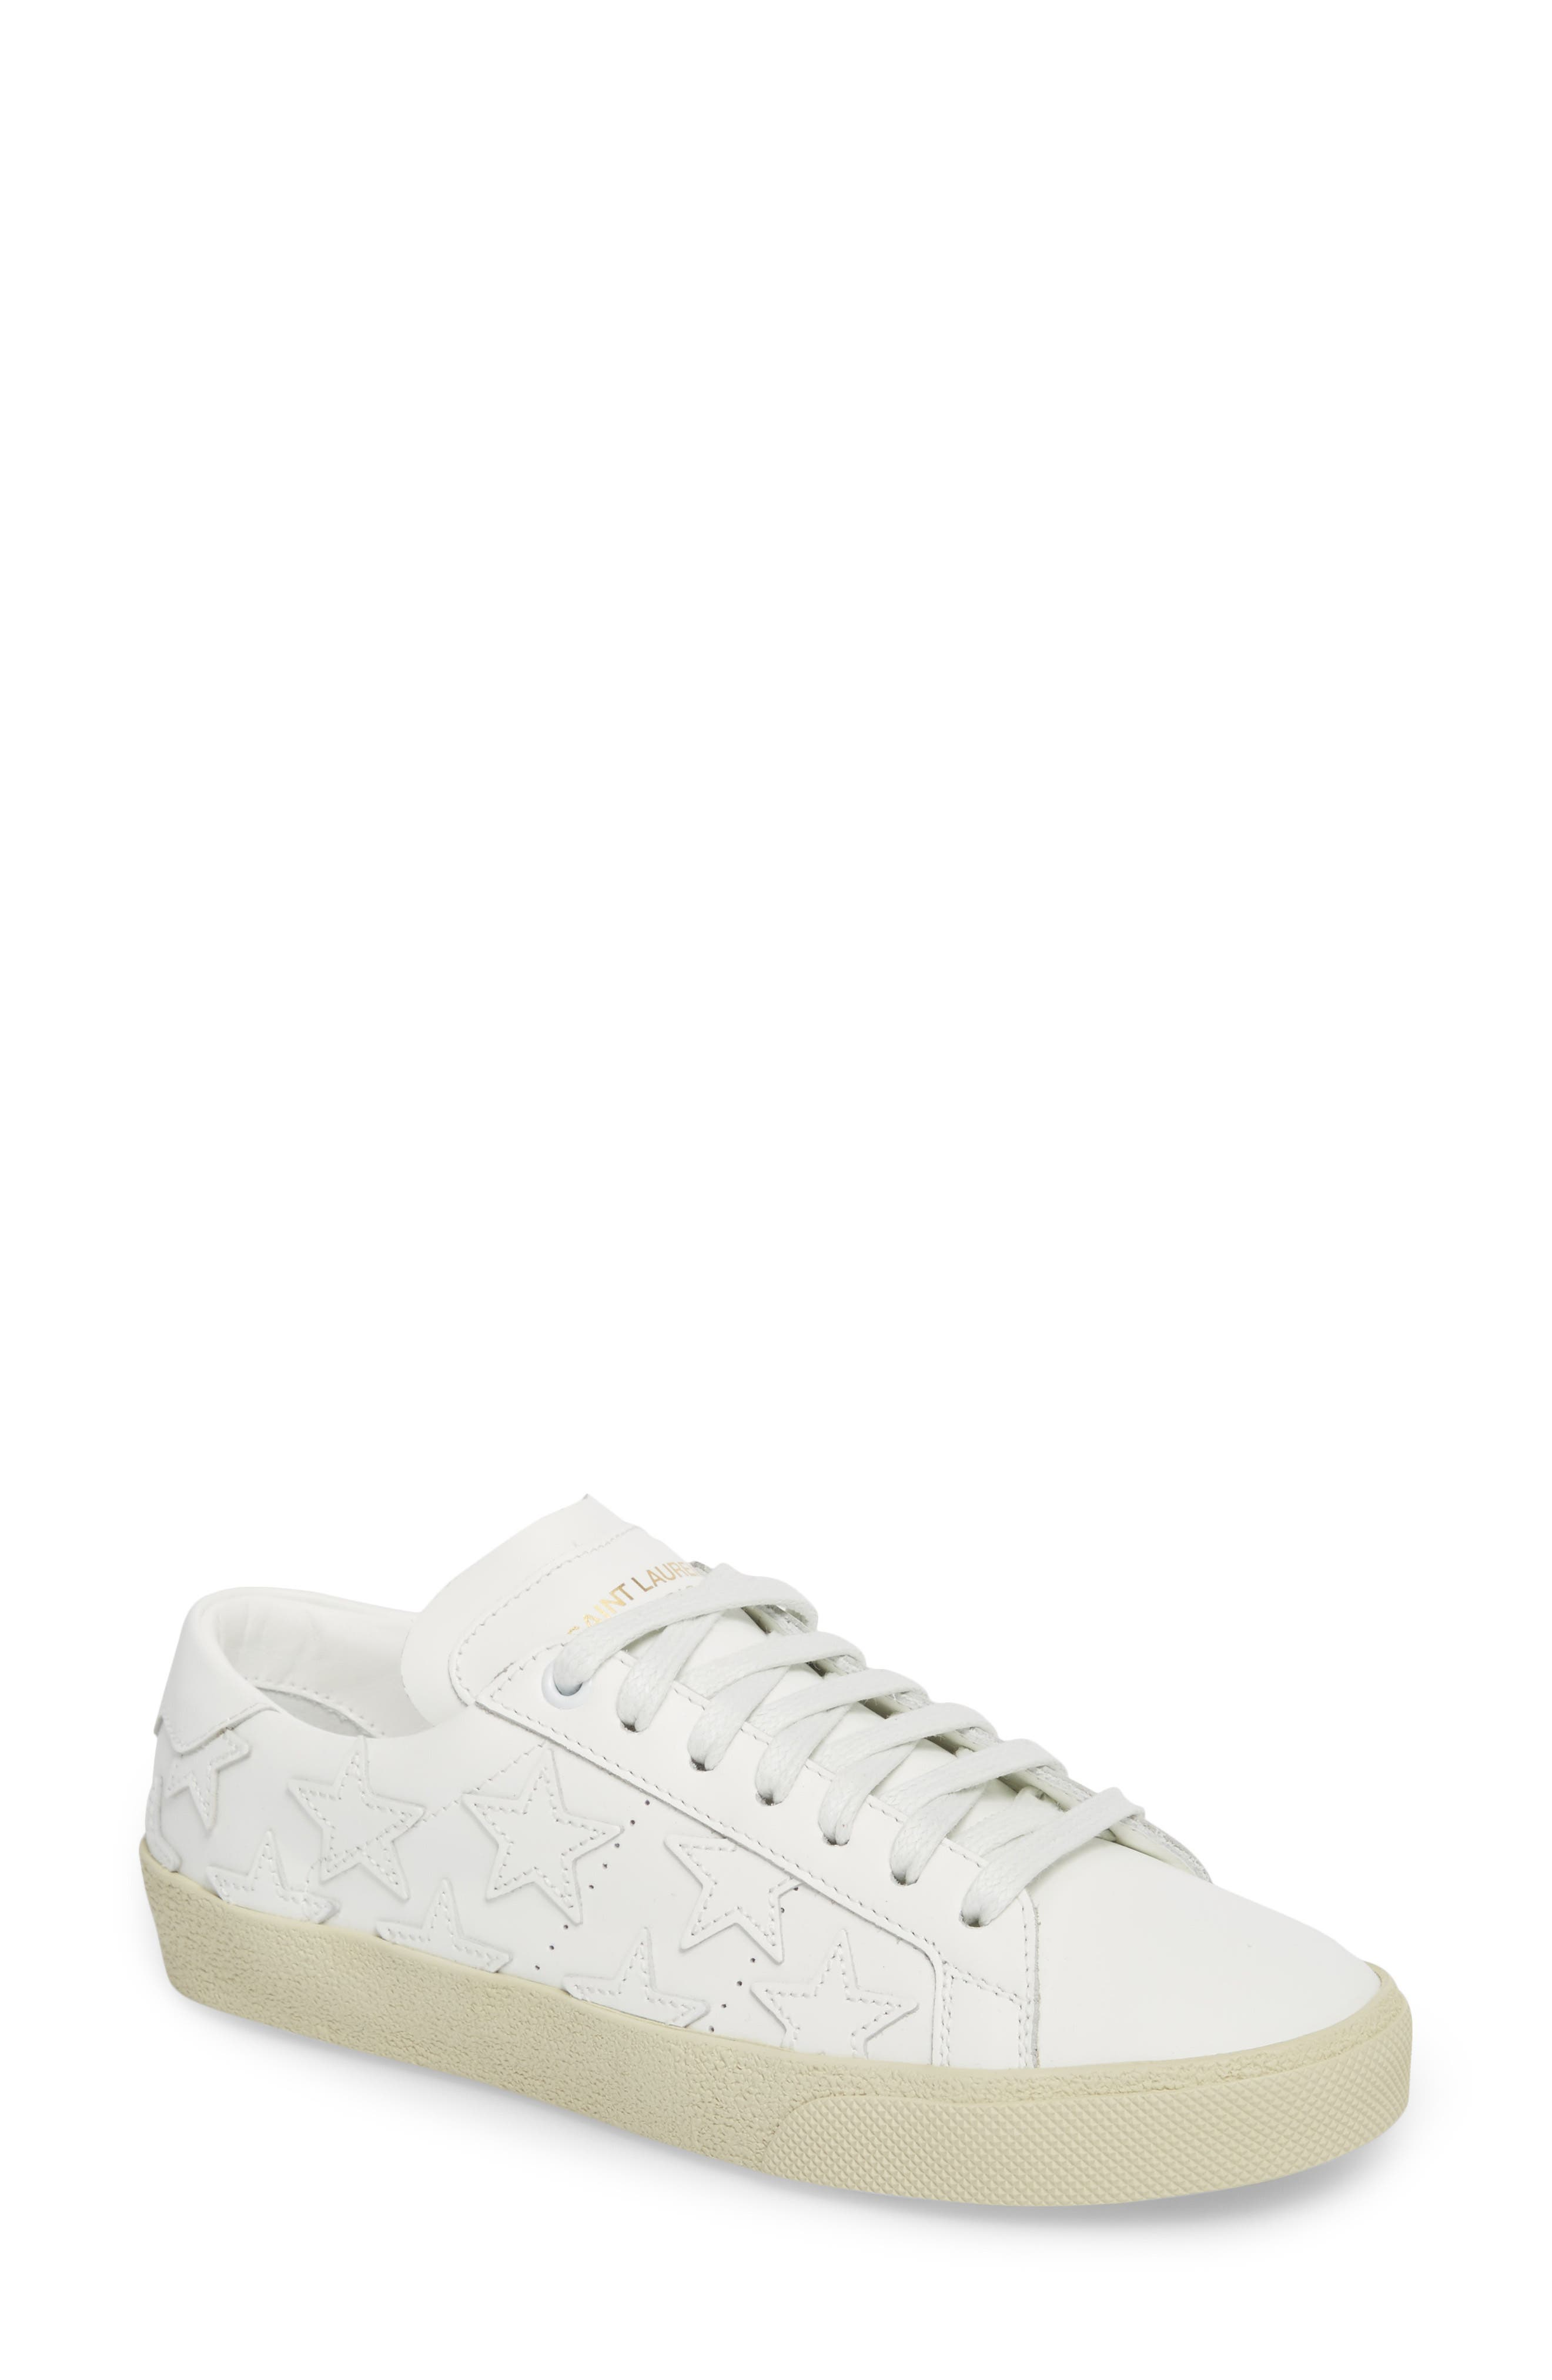 Classic Court Sneaker,                         Main,                         color, Ivory Leather